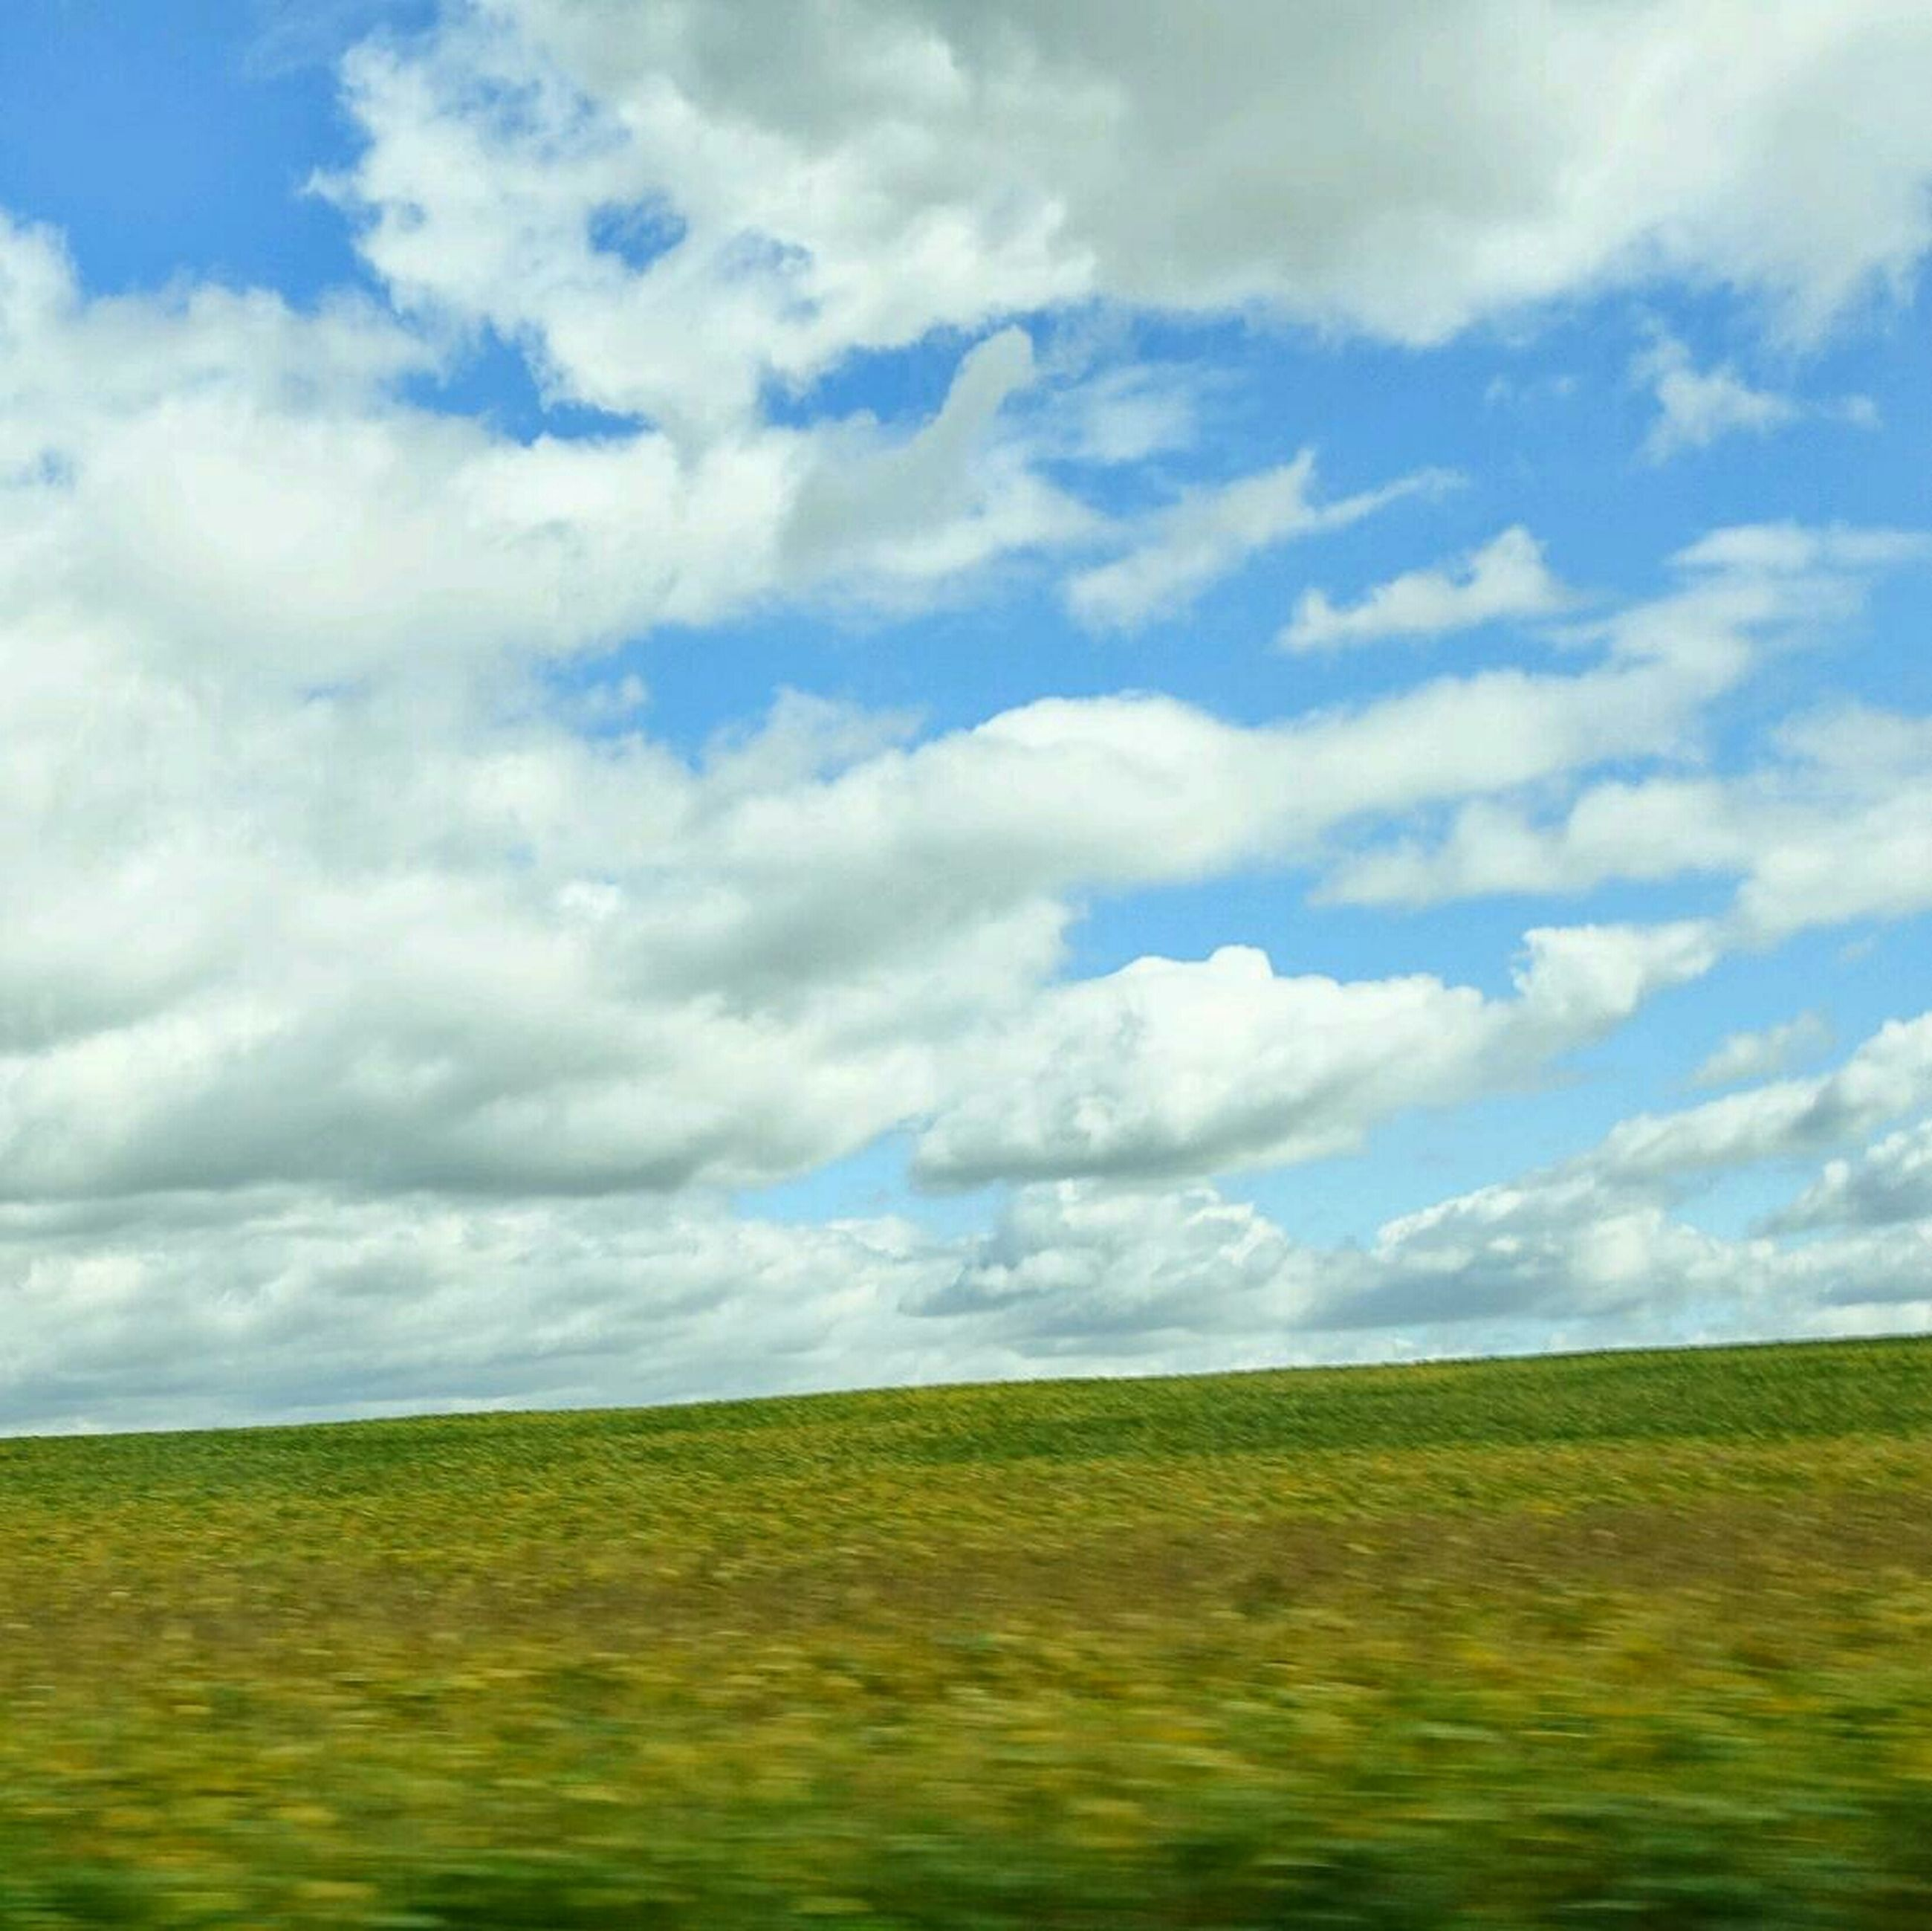 sky, tranquil scene, landscape, field, tranquility, cloud - sky, scenics, beauty in nature, cloudy, agriculture, cloud, rural scene, nature, horizon over land, grass, farm, growth, idyllic, cloudscape, crop